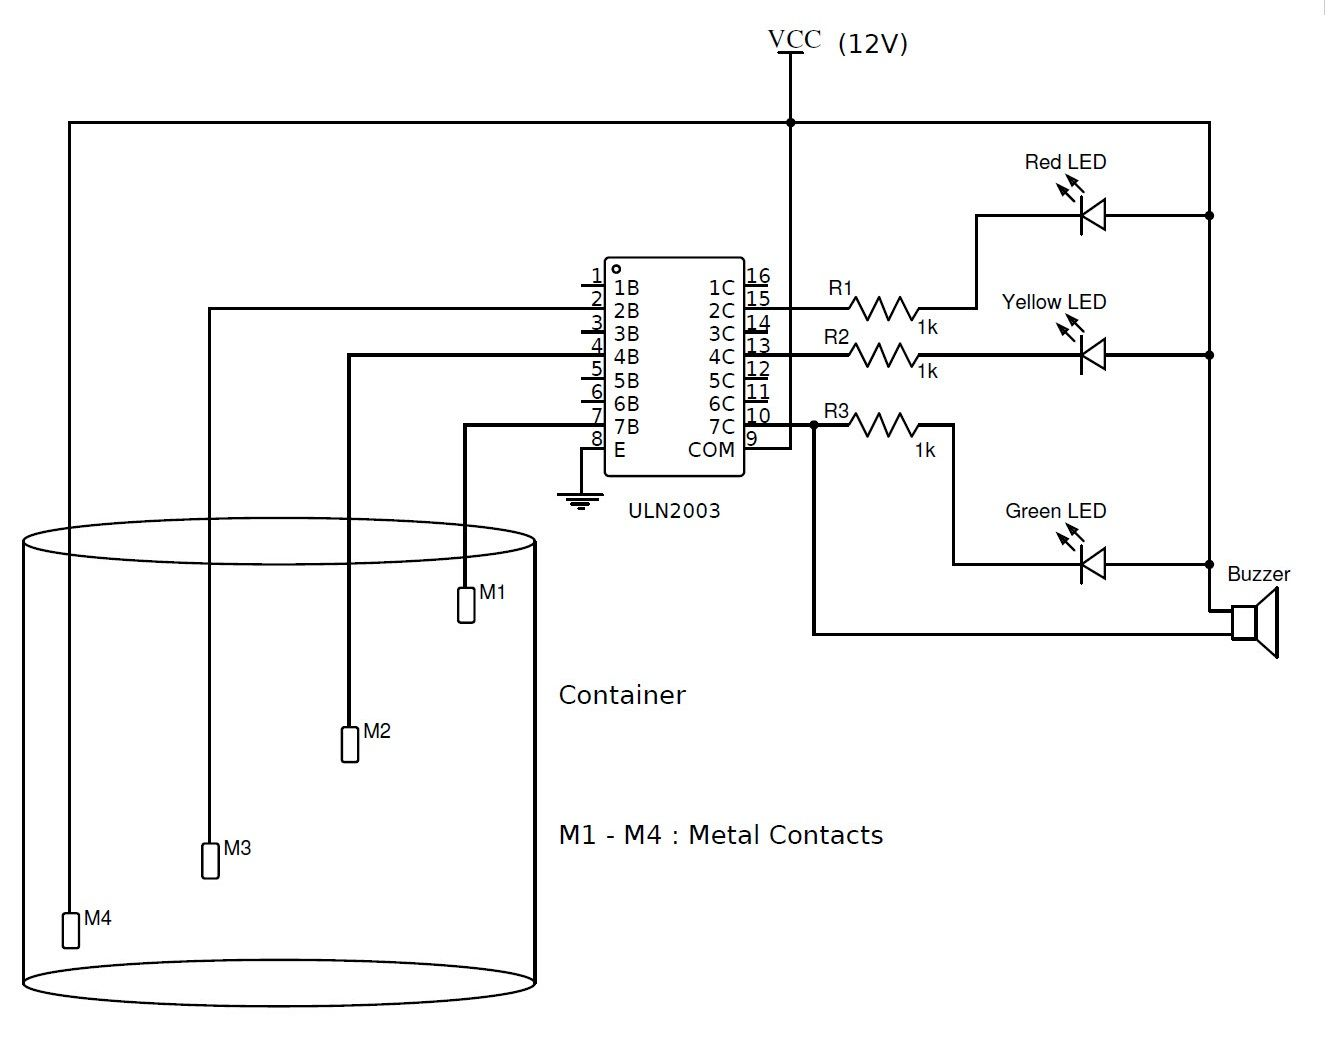 simple water level indicator with alarm 3 tested circuits sensor light switch circuit diagram besides water level sensor circuit [ 1332 x 1038 Pixel ]